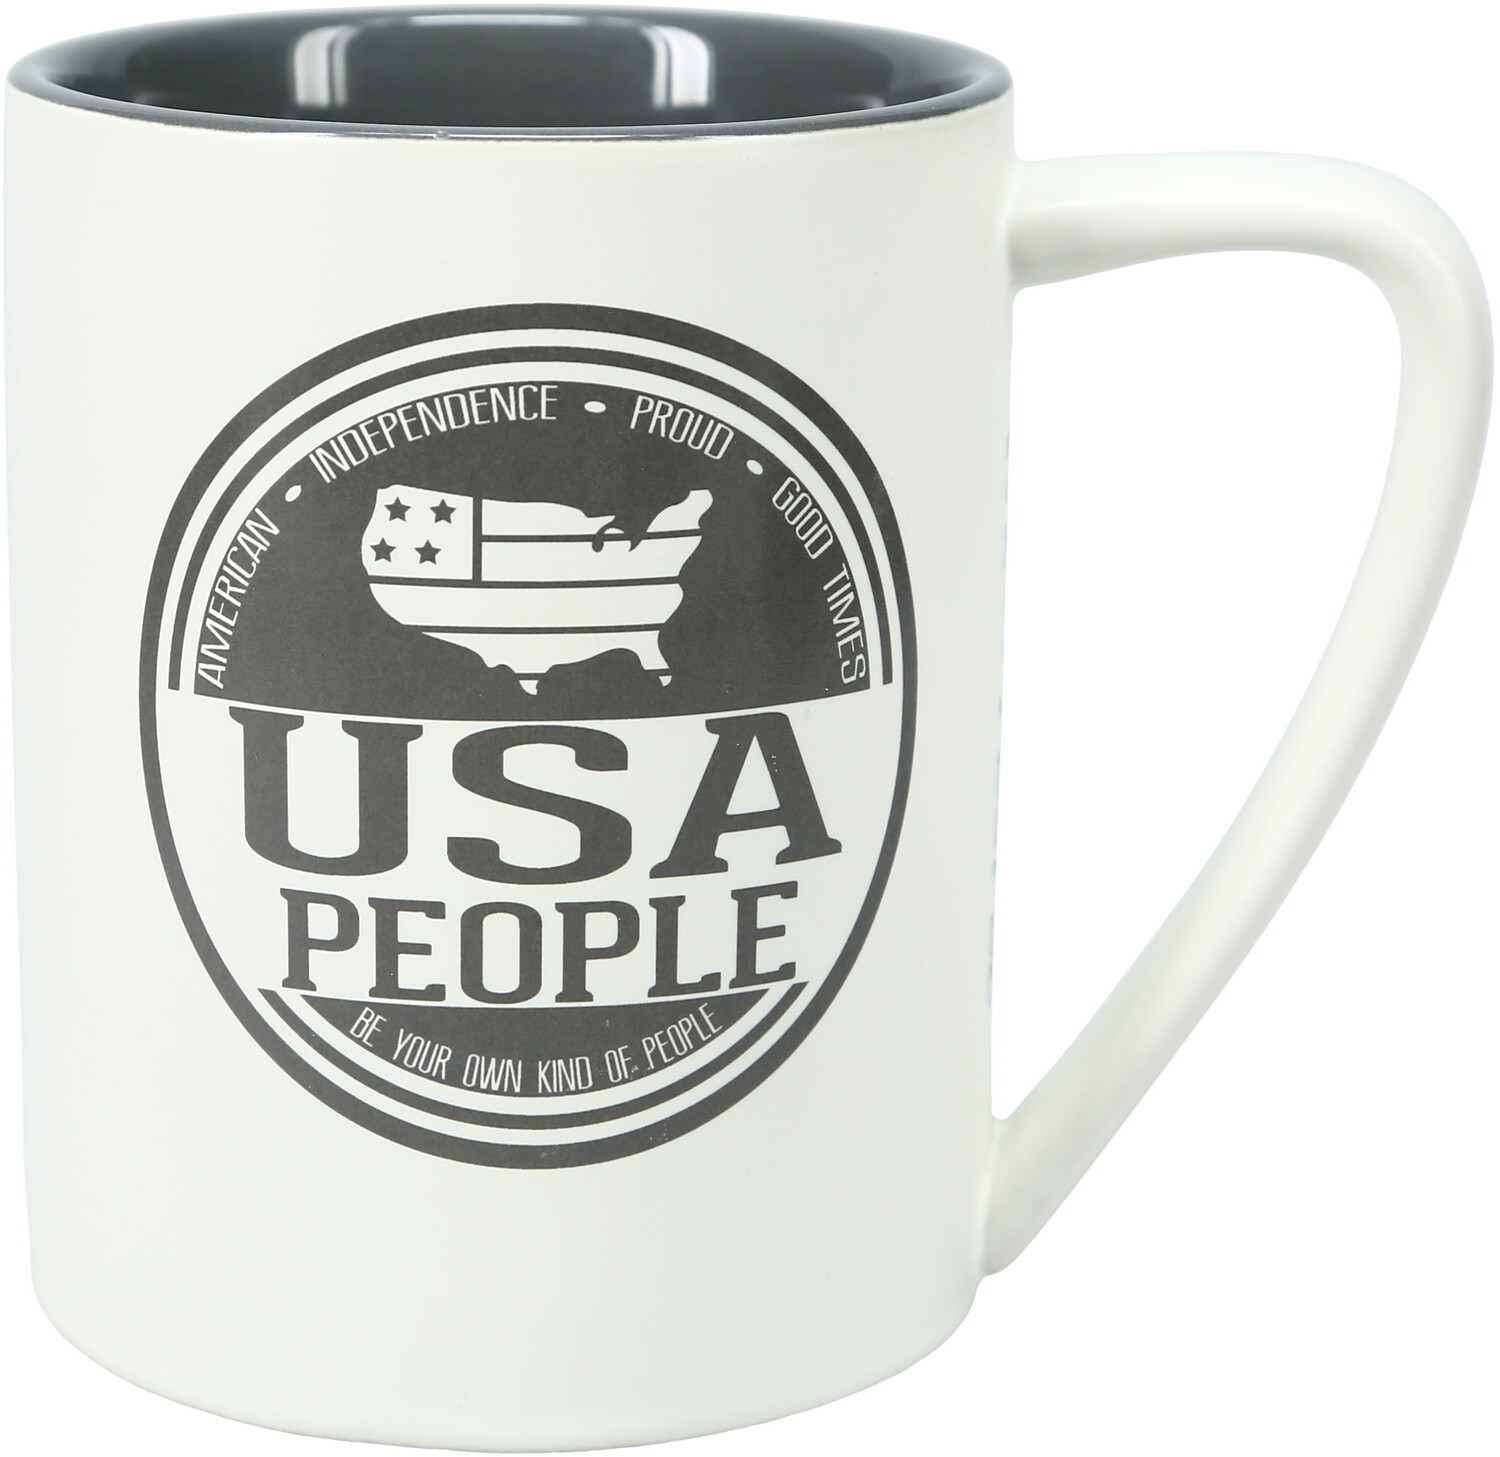 USA People by We People - USA People - 18 oz Mug